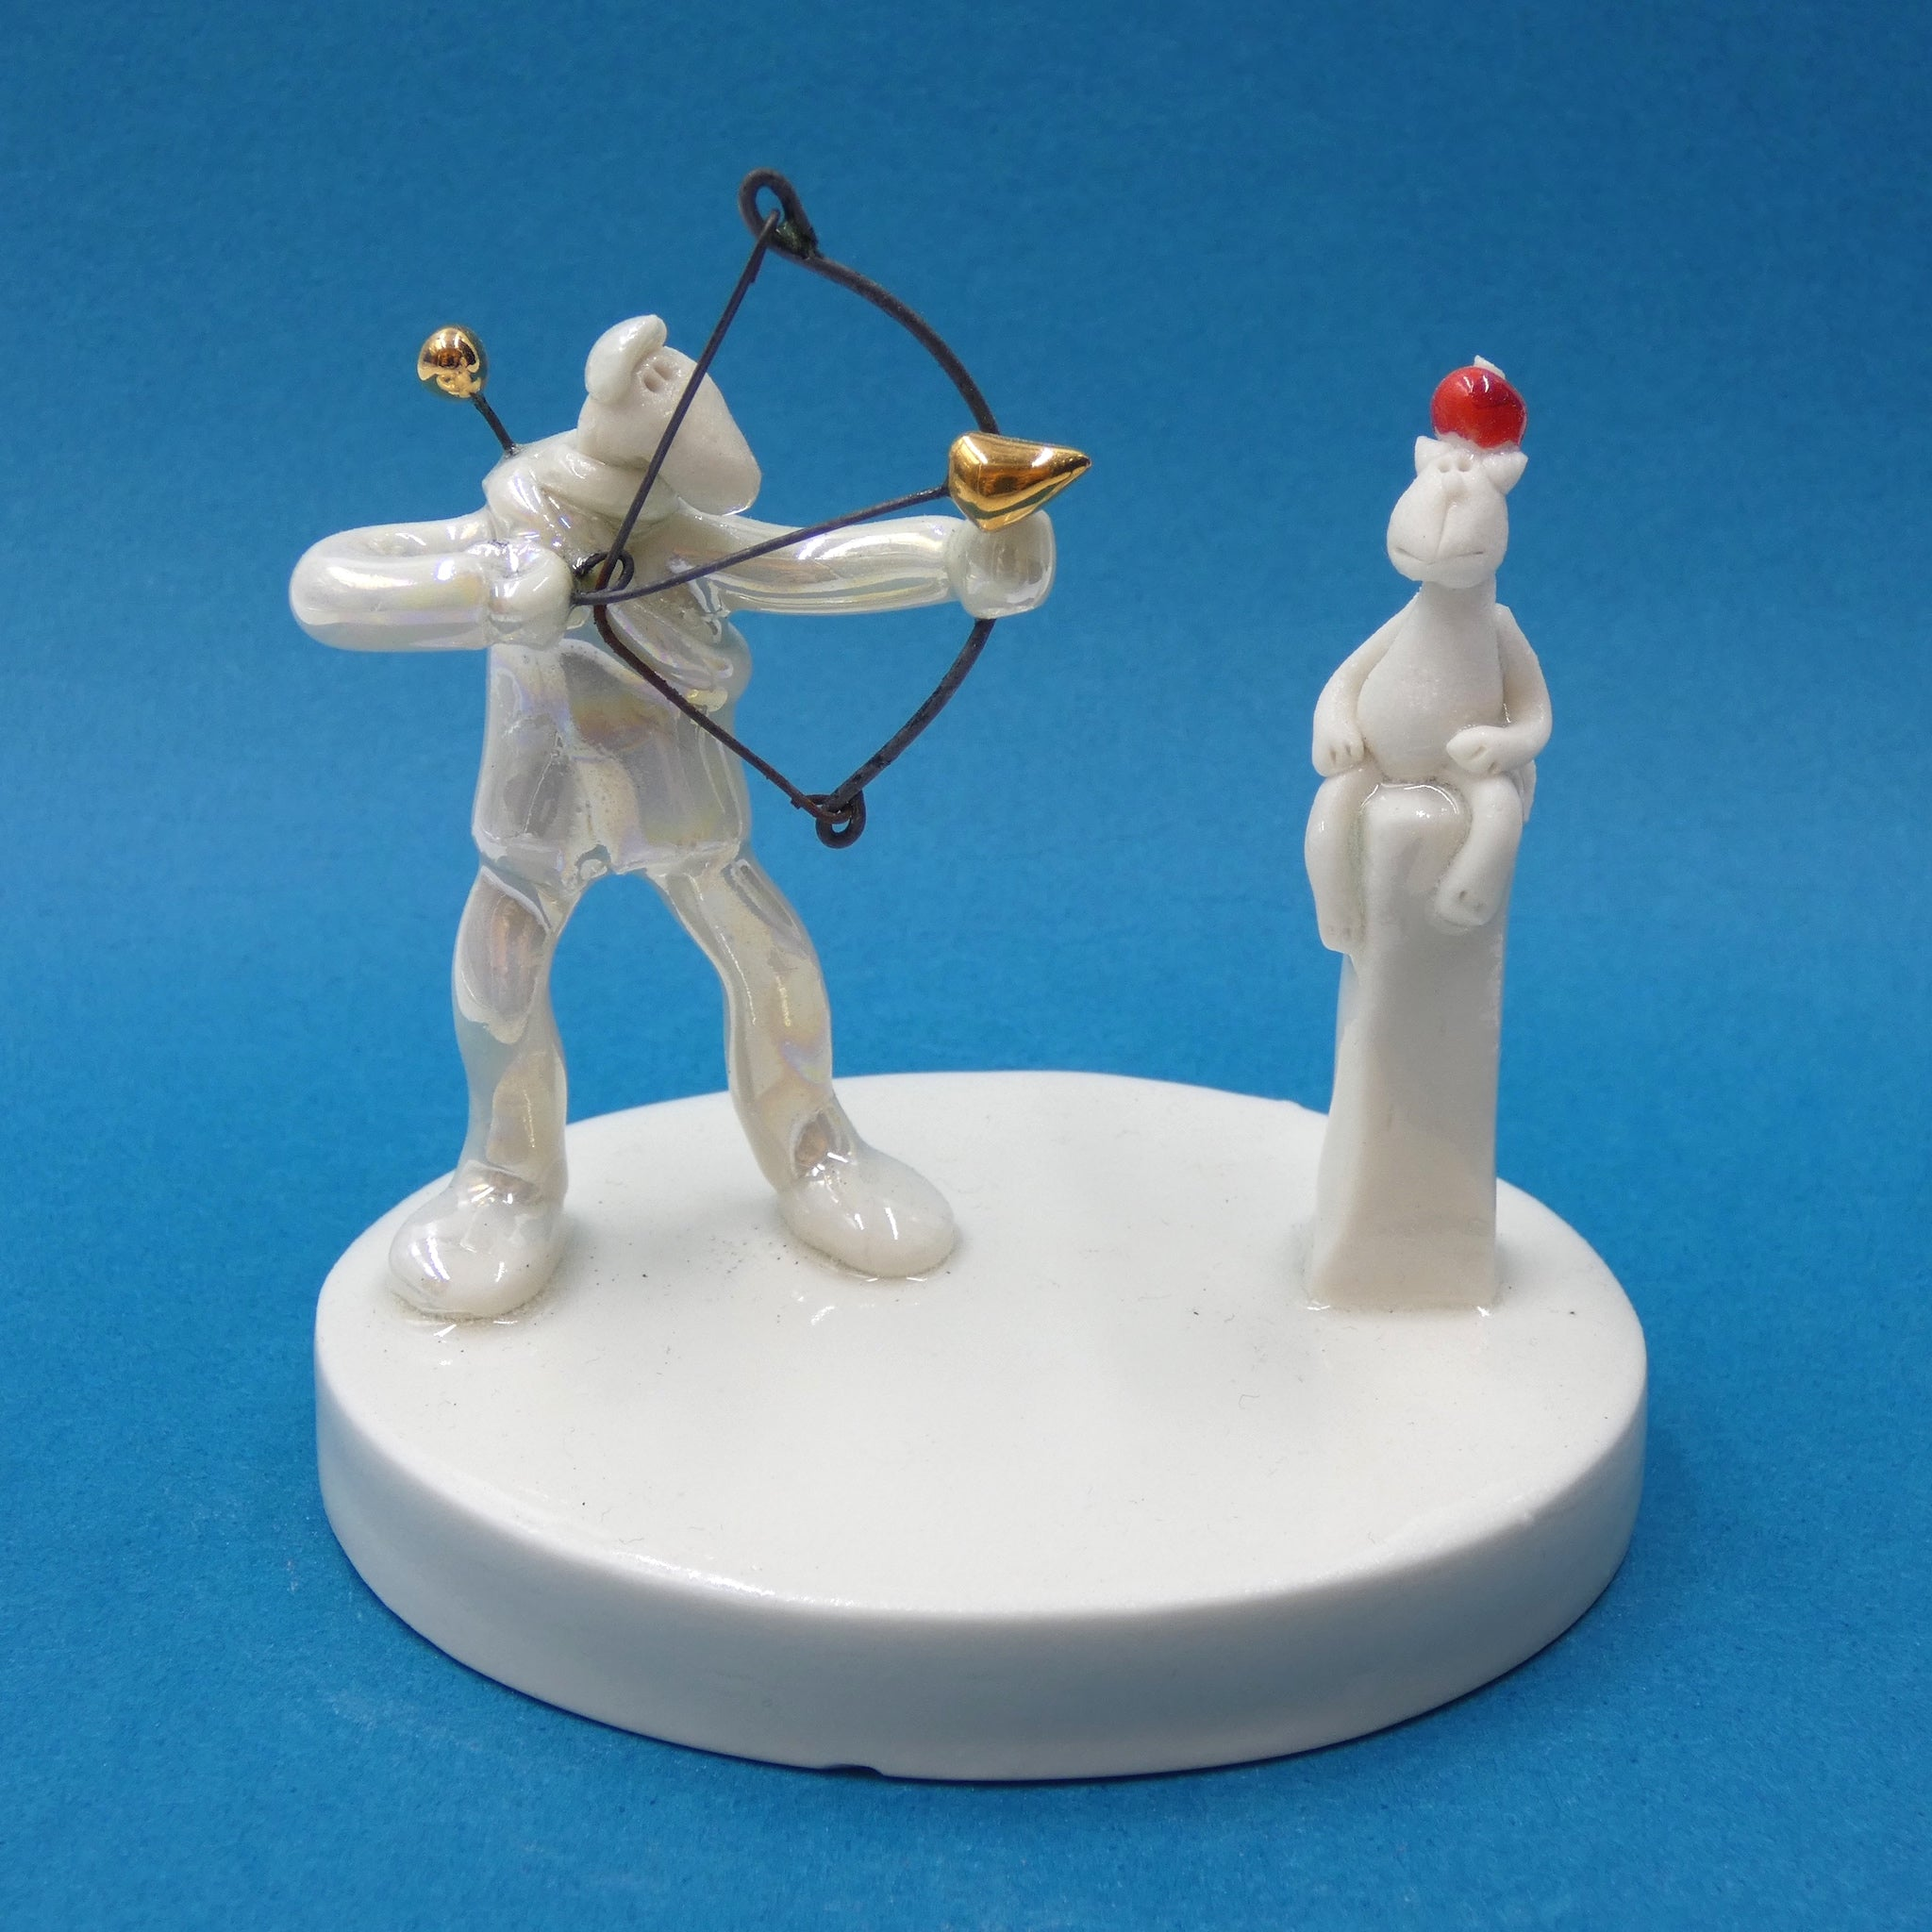 Porcelain sculpture of an archer and his brave cat by artist Andrew Bull